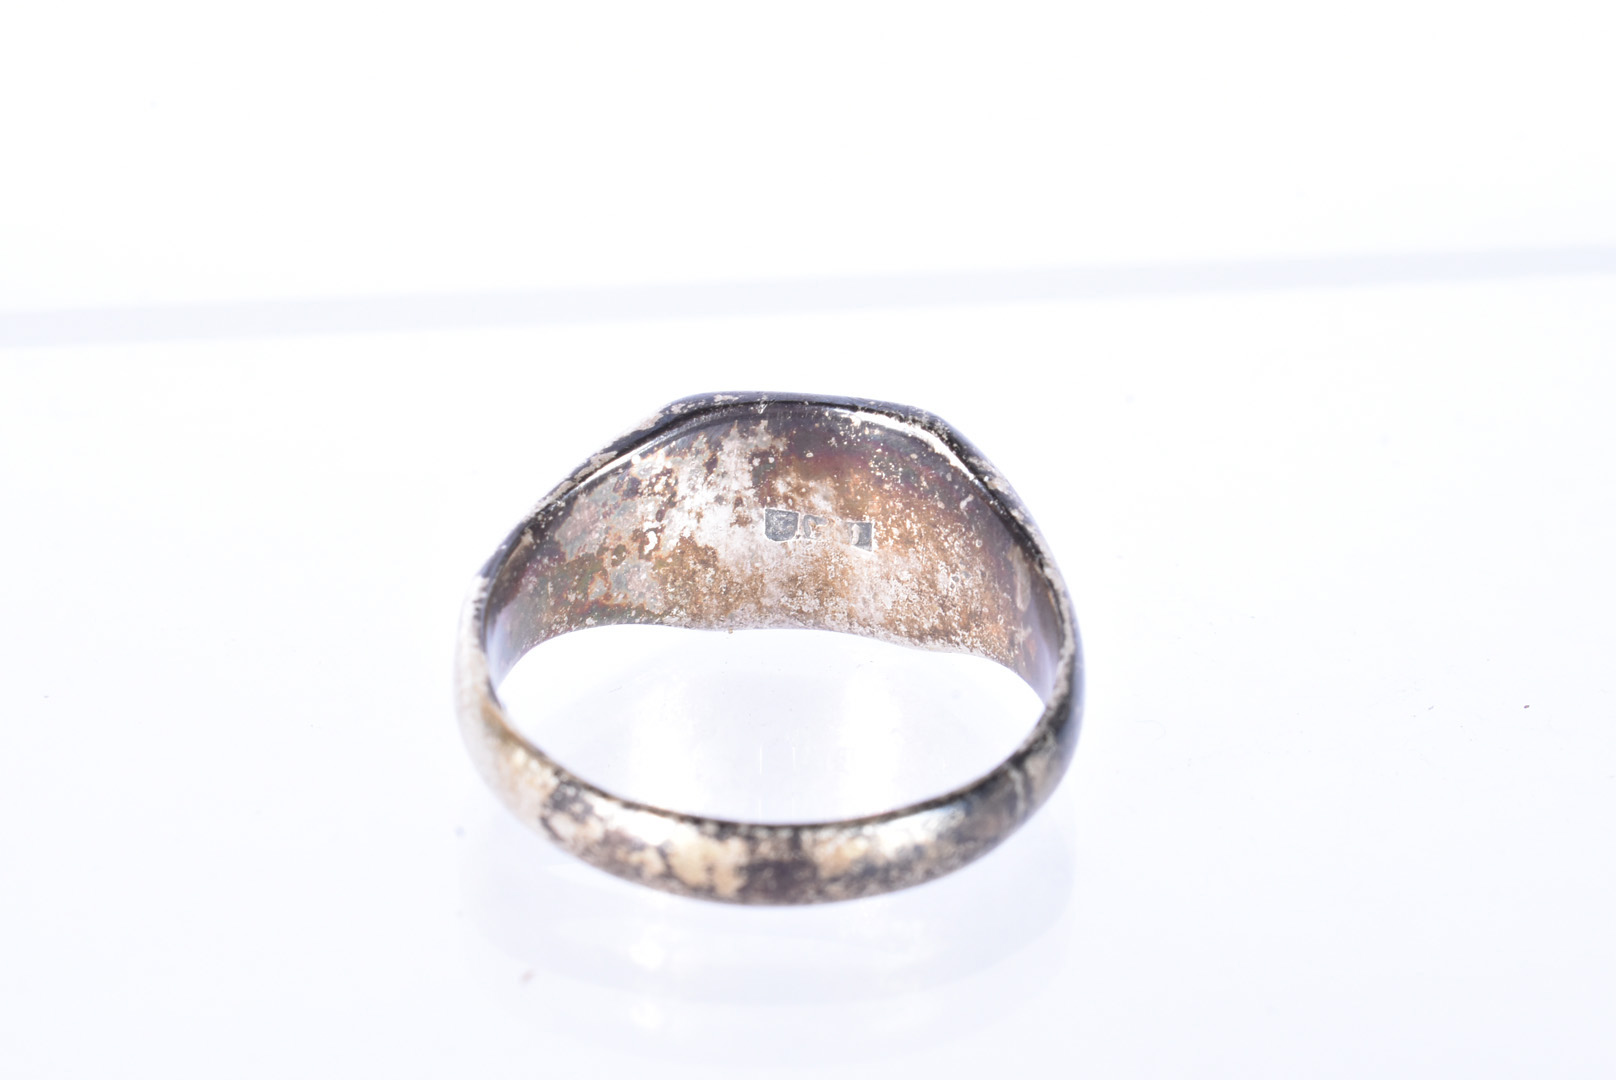 A German Third Reich Honour ring, possibly SS, the white-metal ring with skull and cross bones to - Image 3 of 3